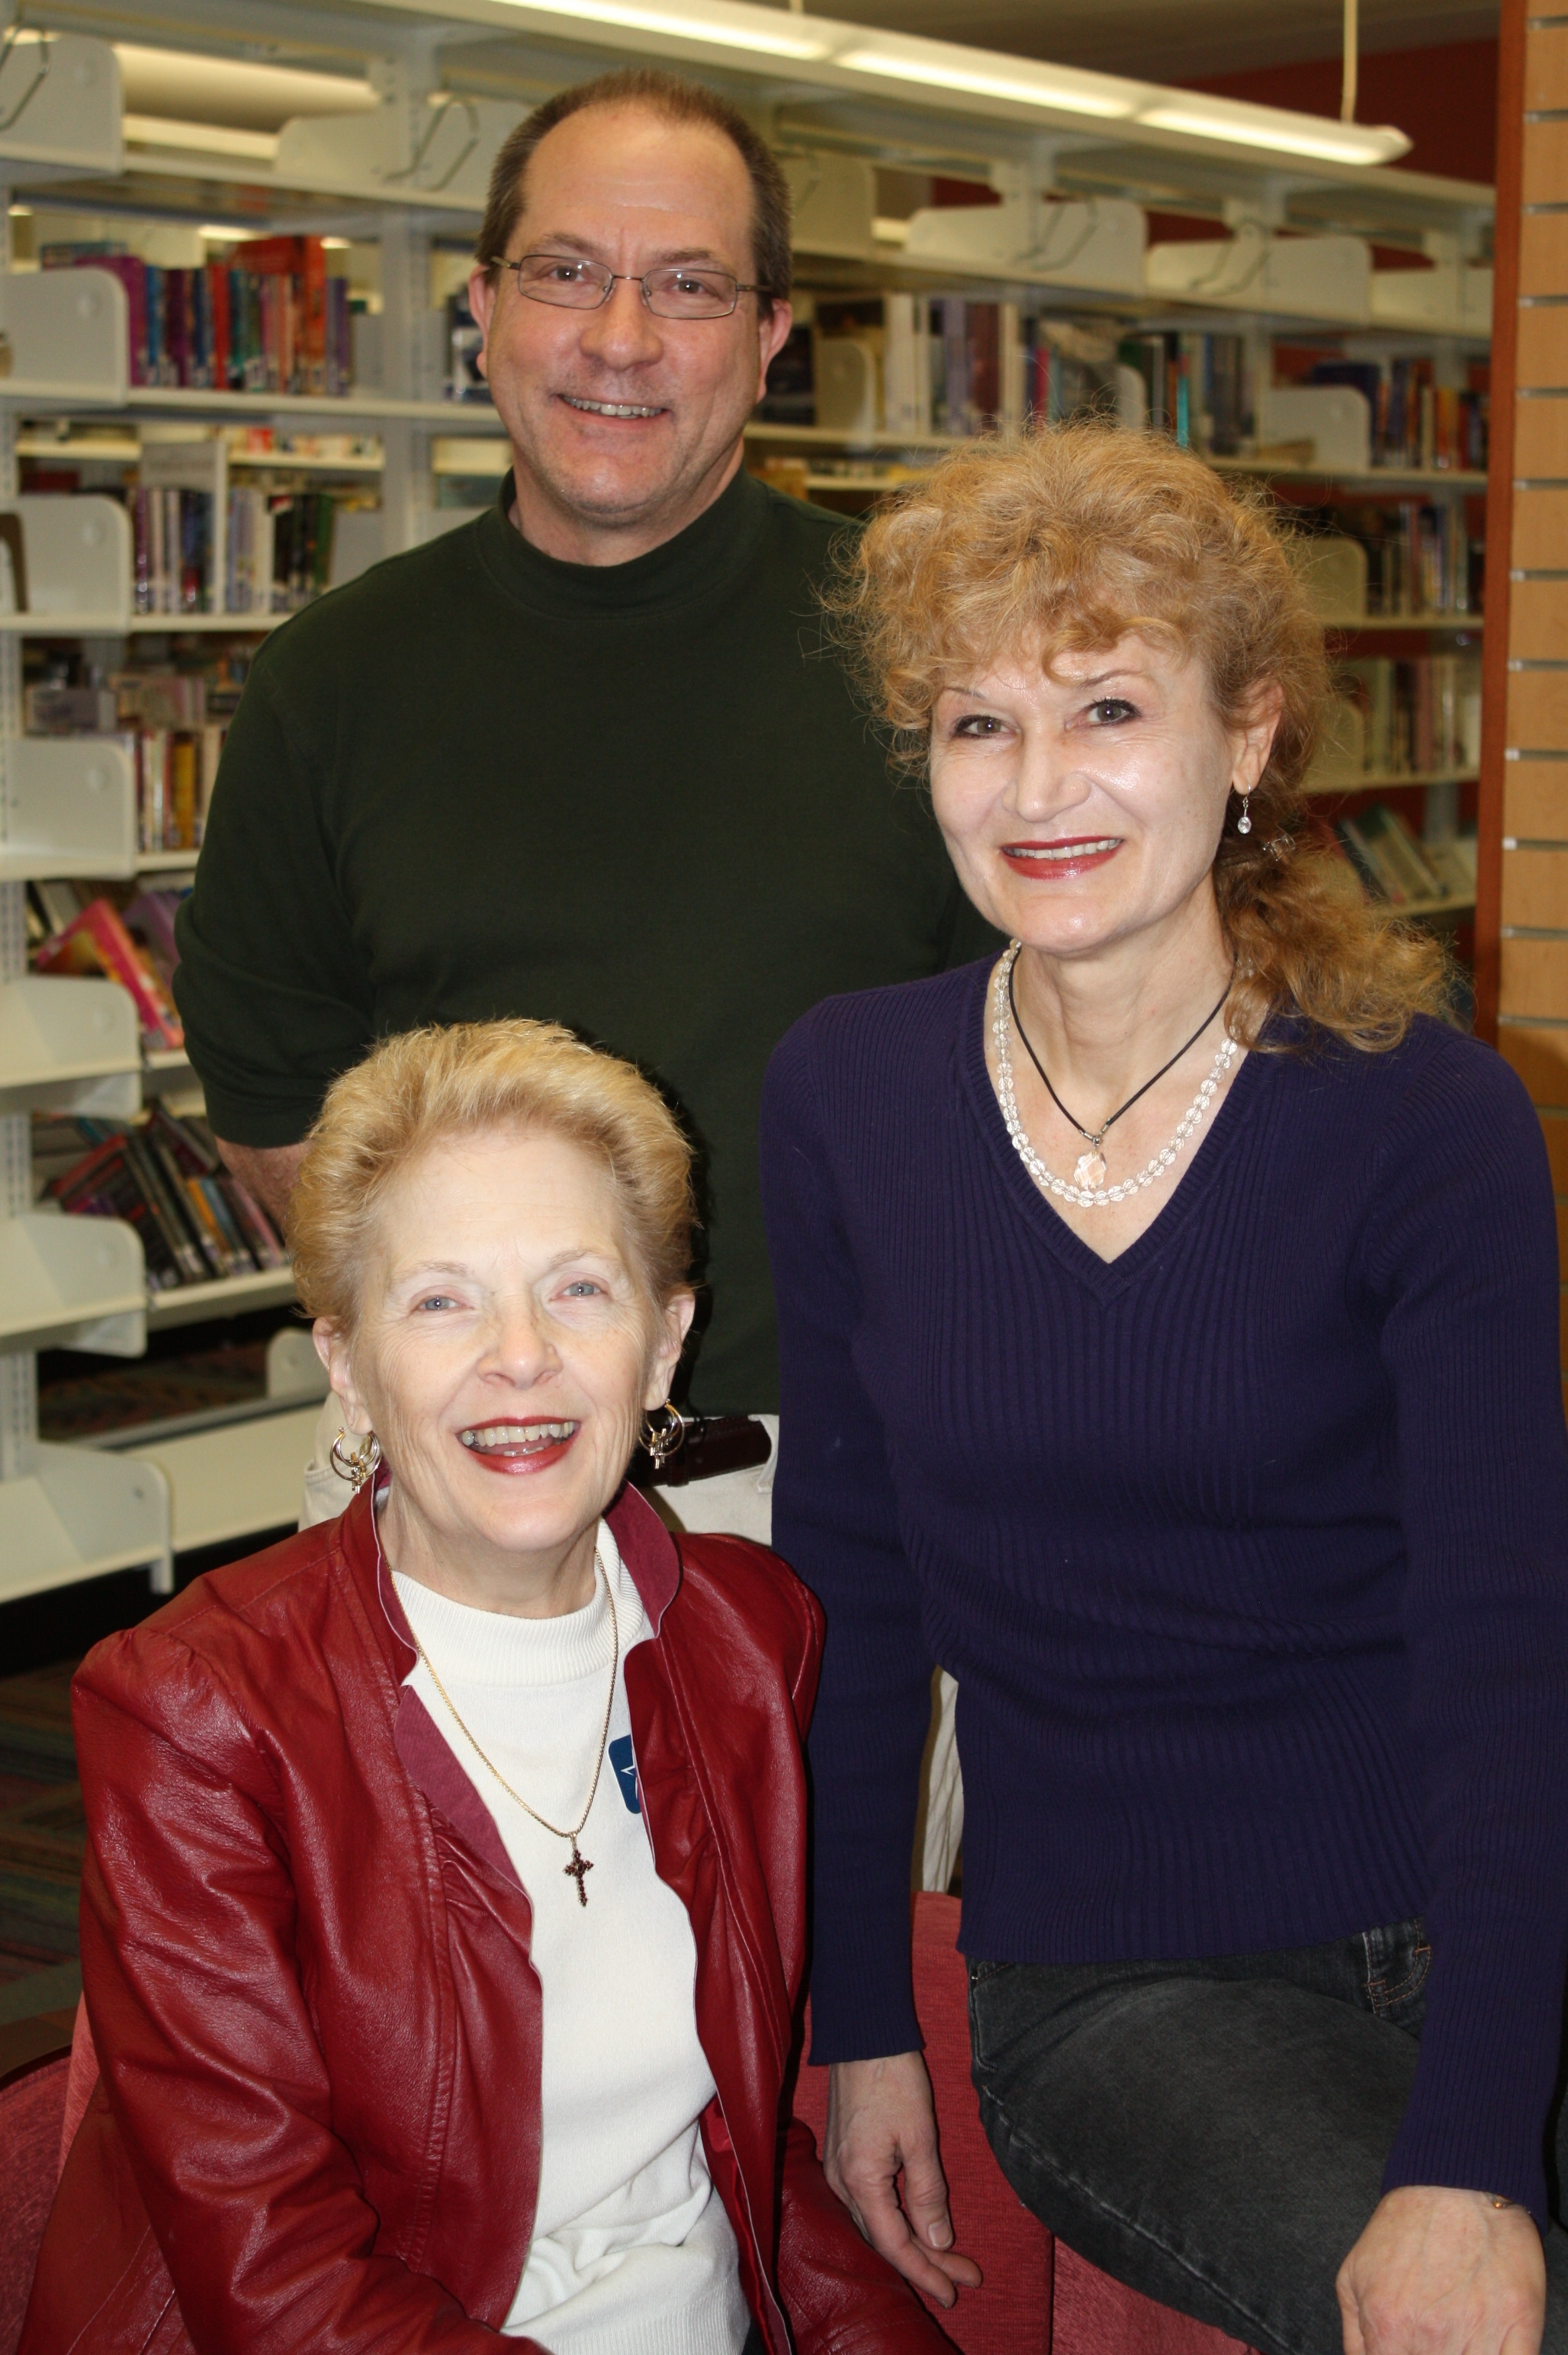 Pictured clockwise from top: Bill Simcik, Irina Nizova, Judy Harris. Not pictured, V.C. Patel.